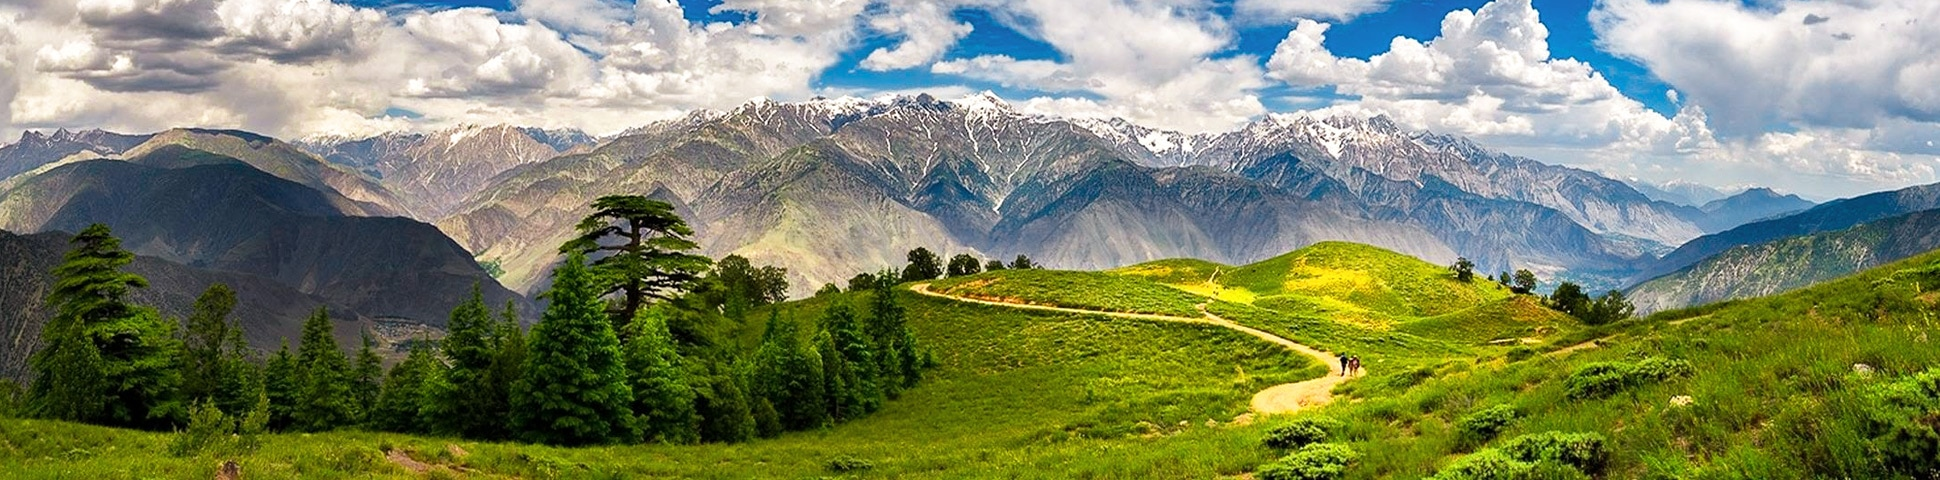 7 Epic Pakistan Adventures to Add to Your Bucket List